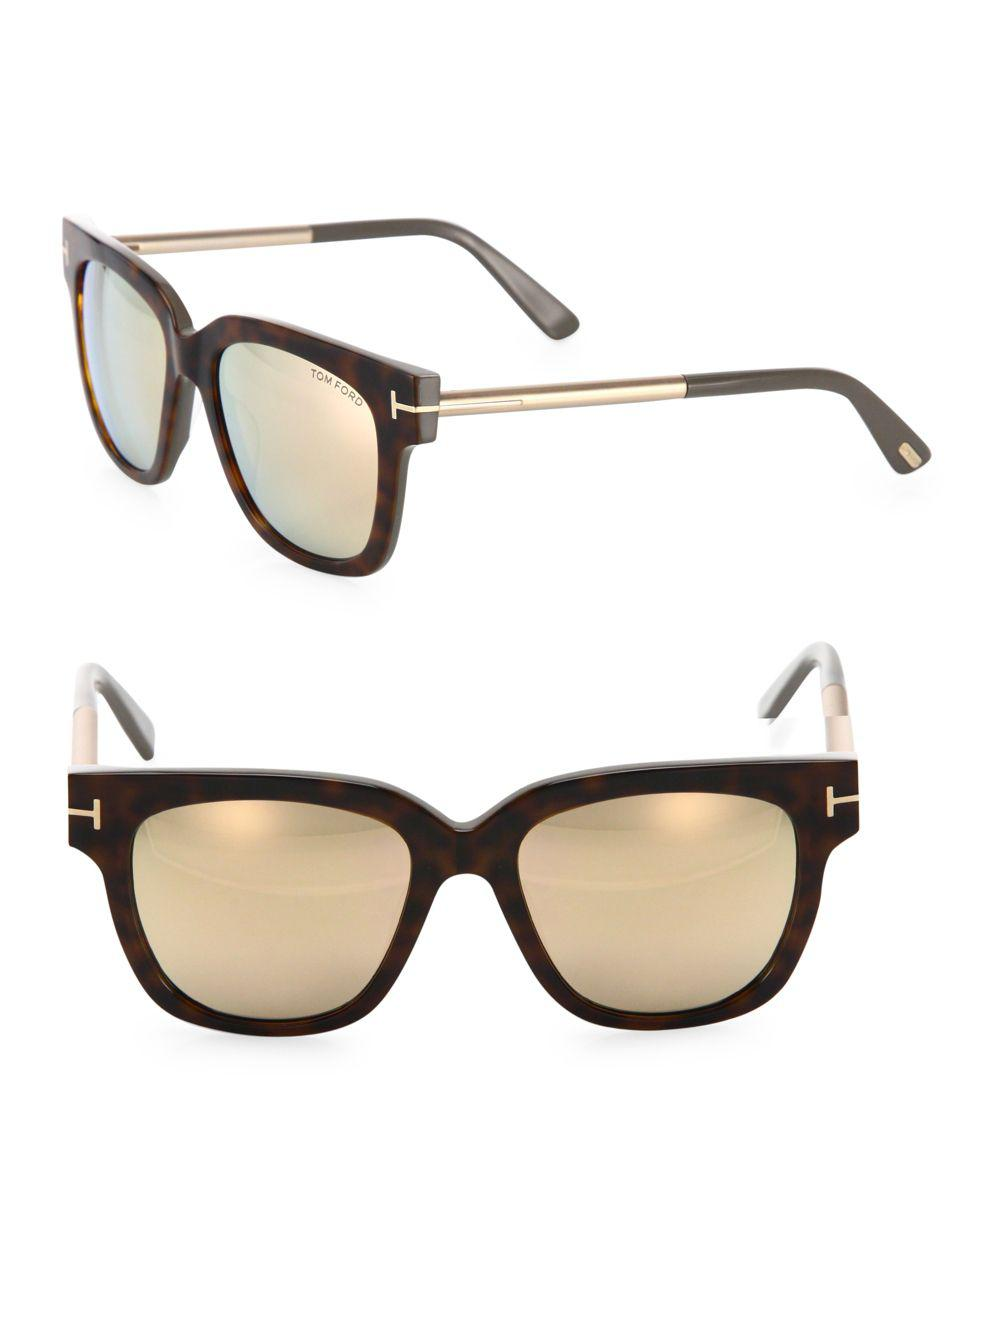 feea7cdba020 Lyst - Tom Ford Tracy 53mm Mirrored Soft Square Sunglasses in Brown